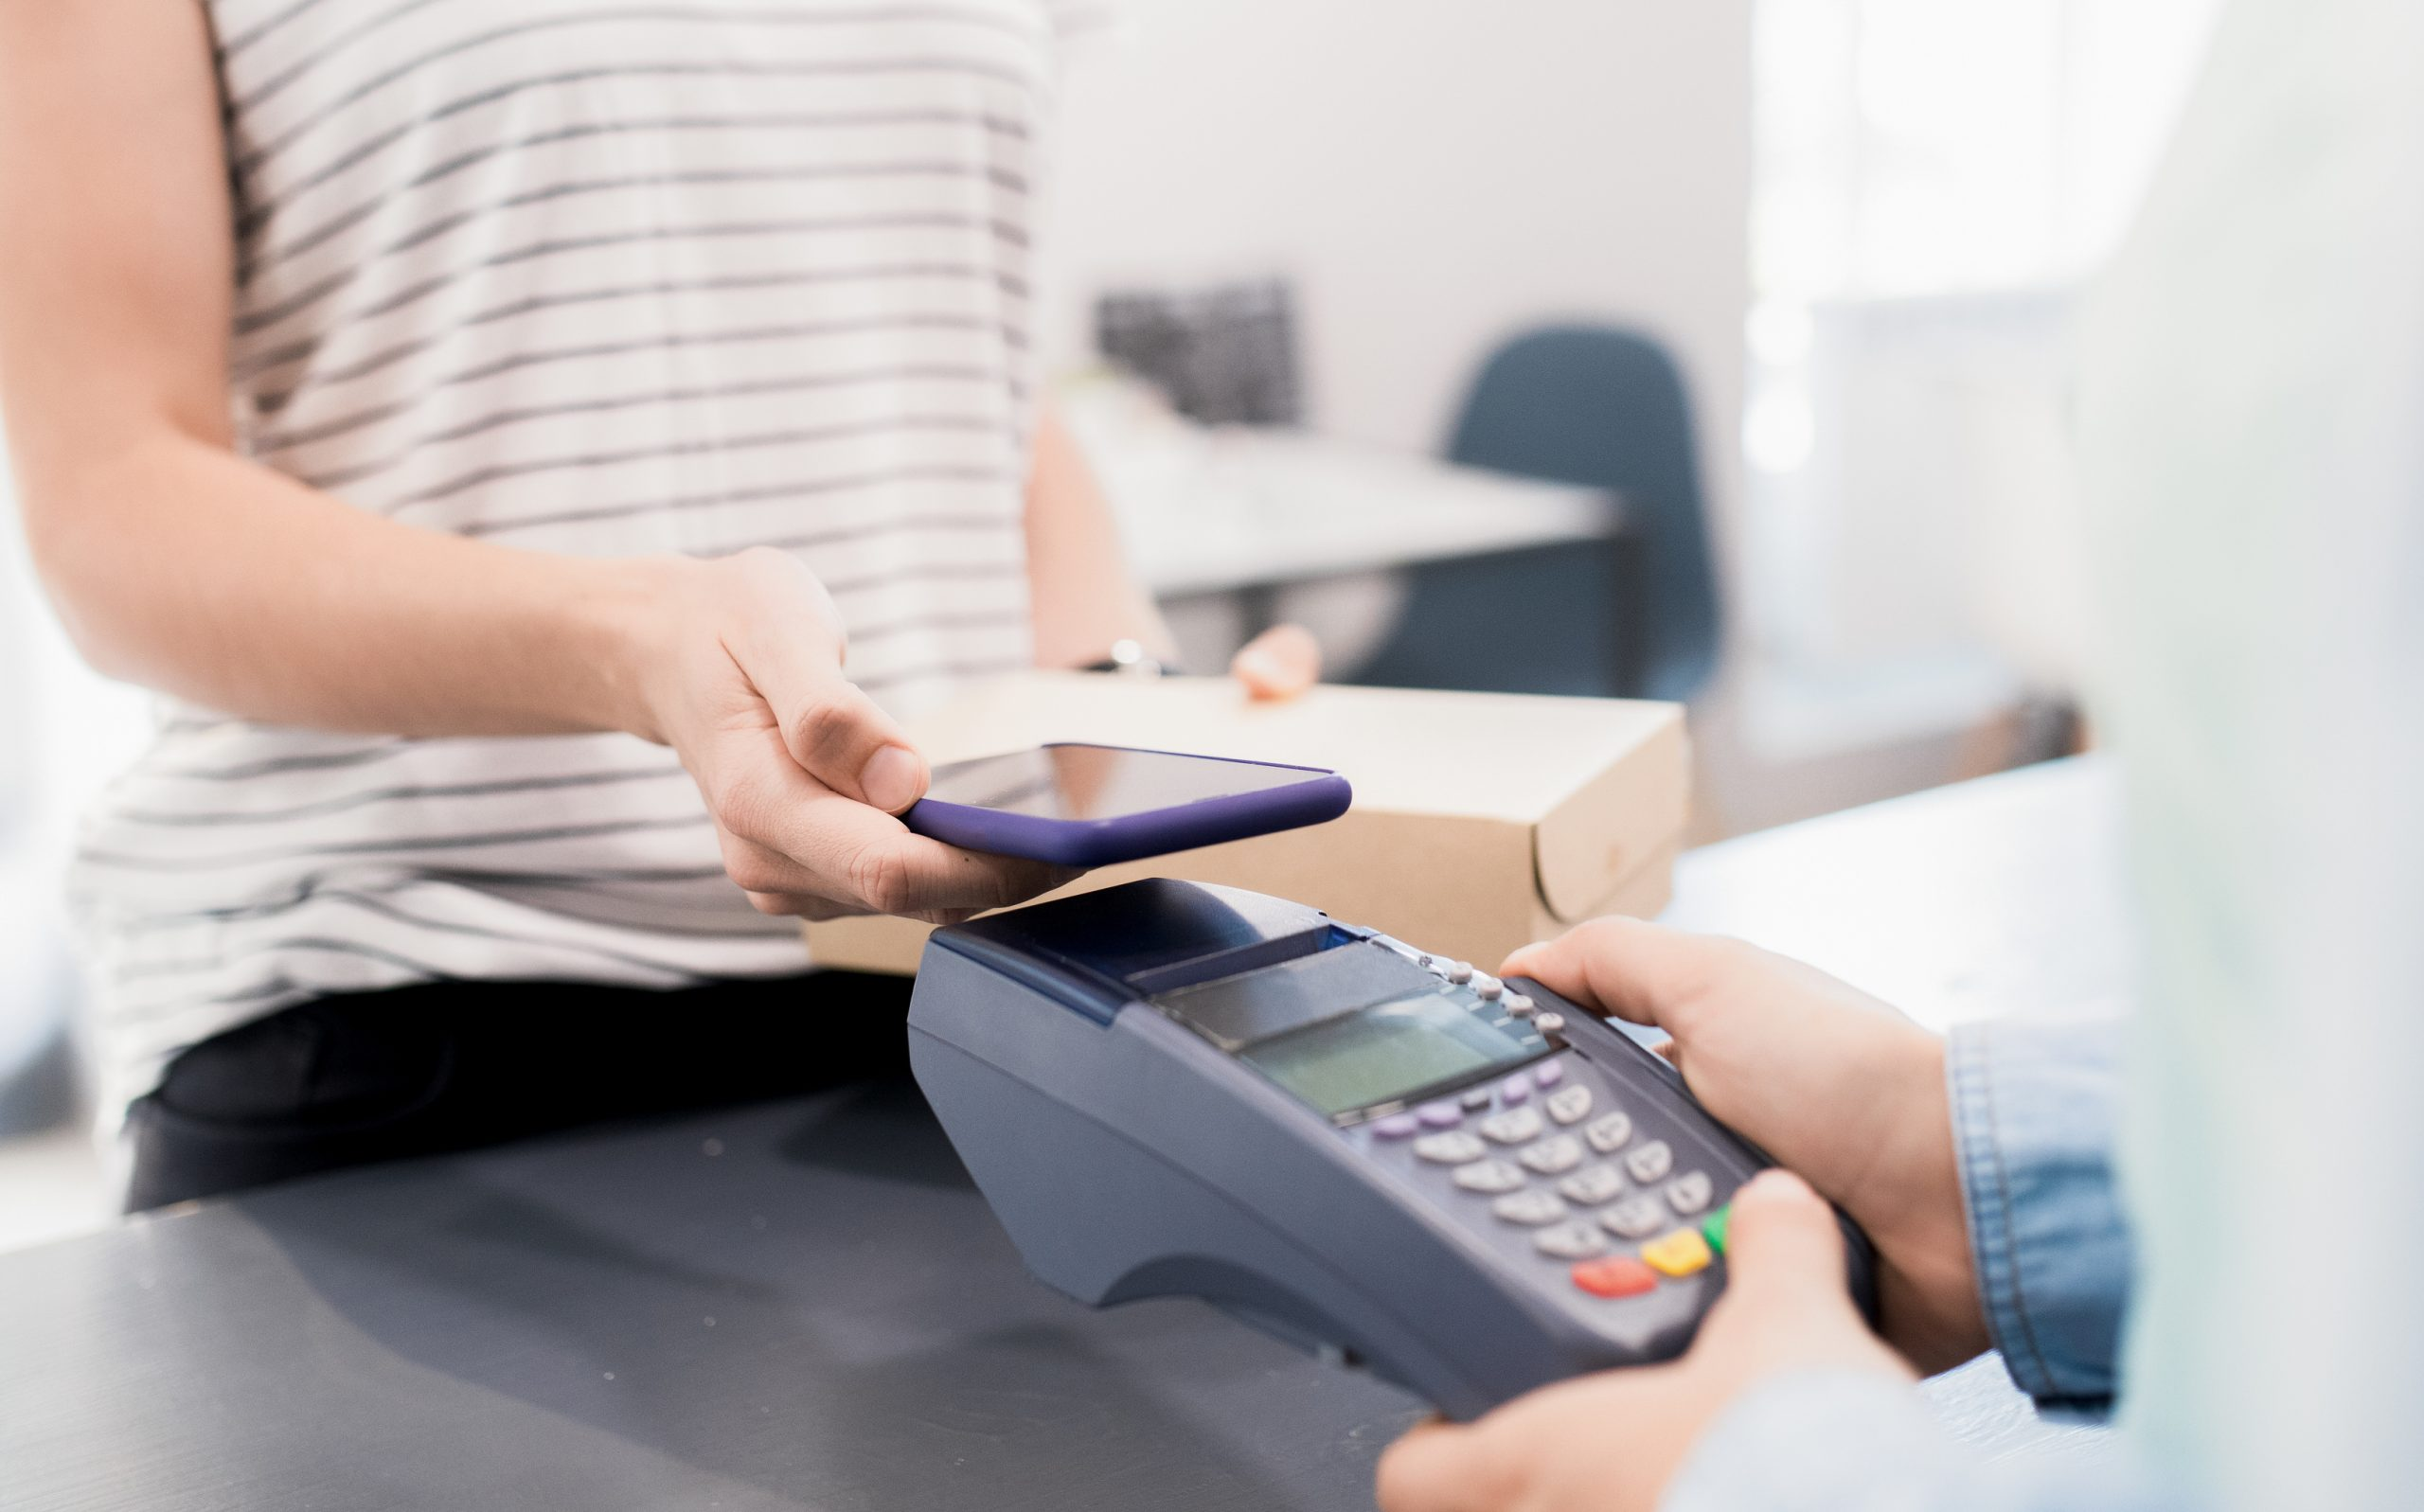 Top Seven Mobile Payment Options